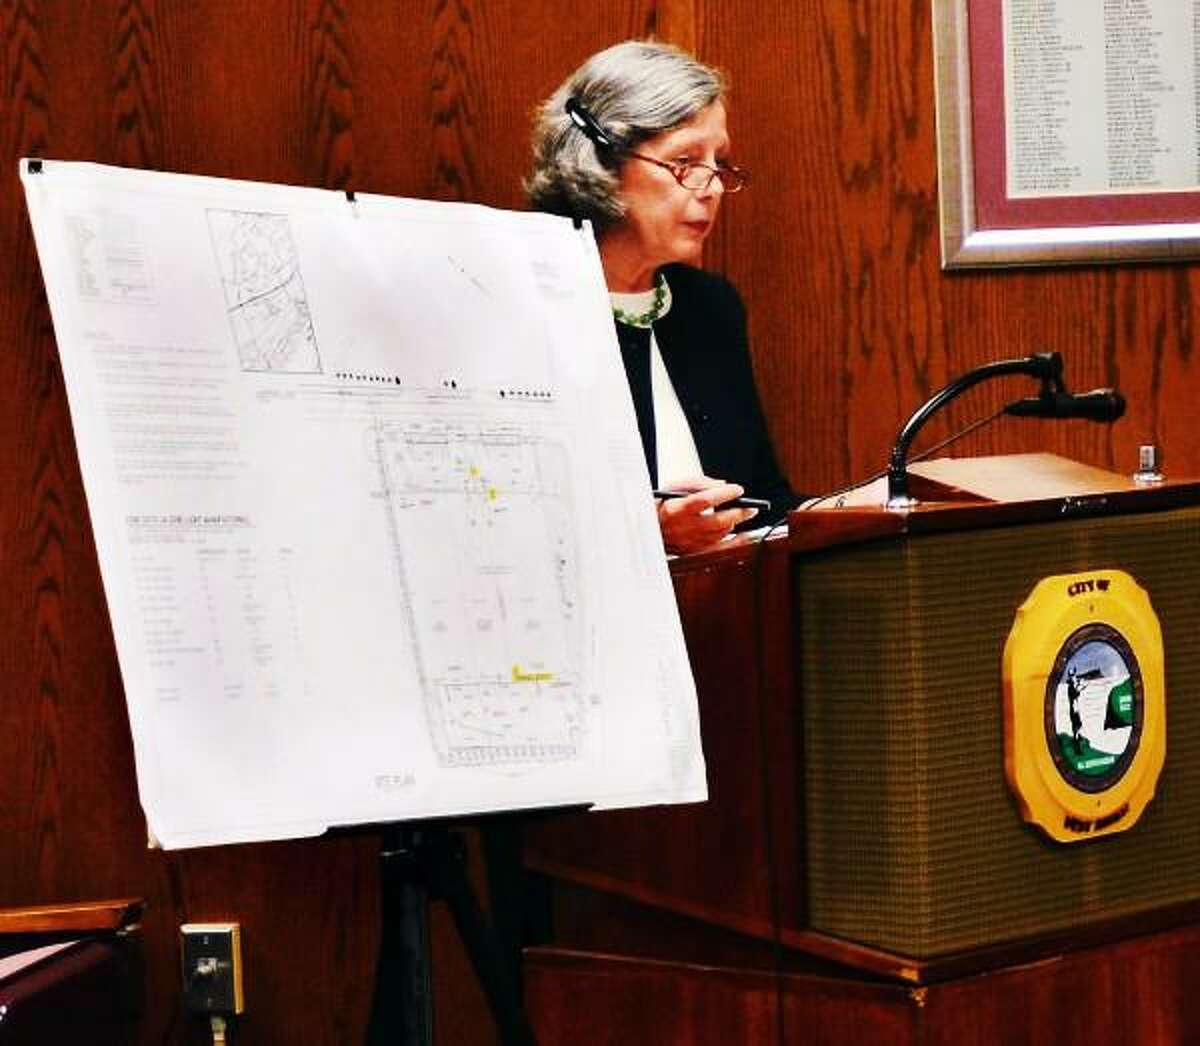 Melanie Stengel/New Haven Register Attorney Diane Whitney, of the law firm Pullmam and Comley, listens to a question about the proposed use of a building on Frontage Rd., in West Haven, as a medical marijuanna facility 8/9.